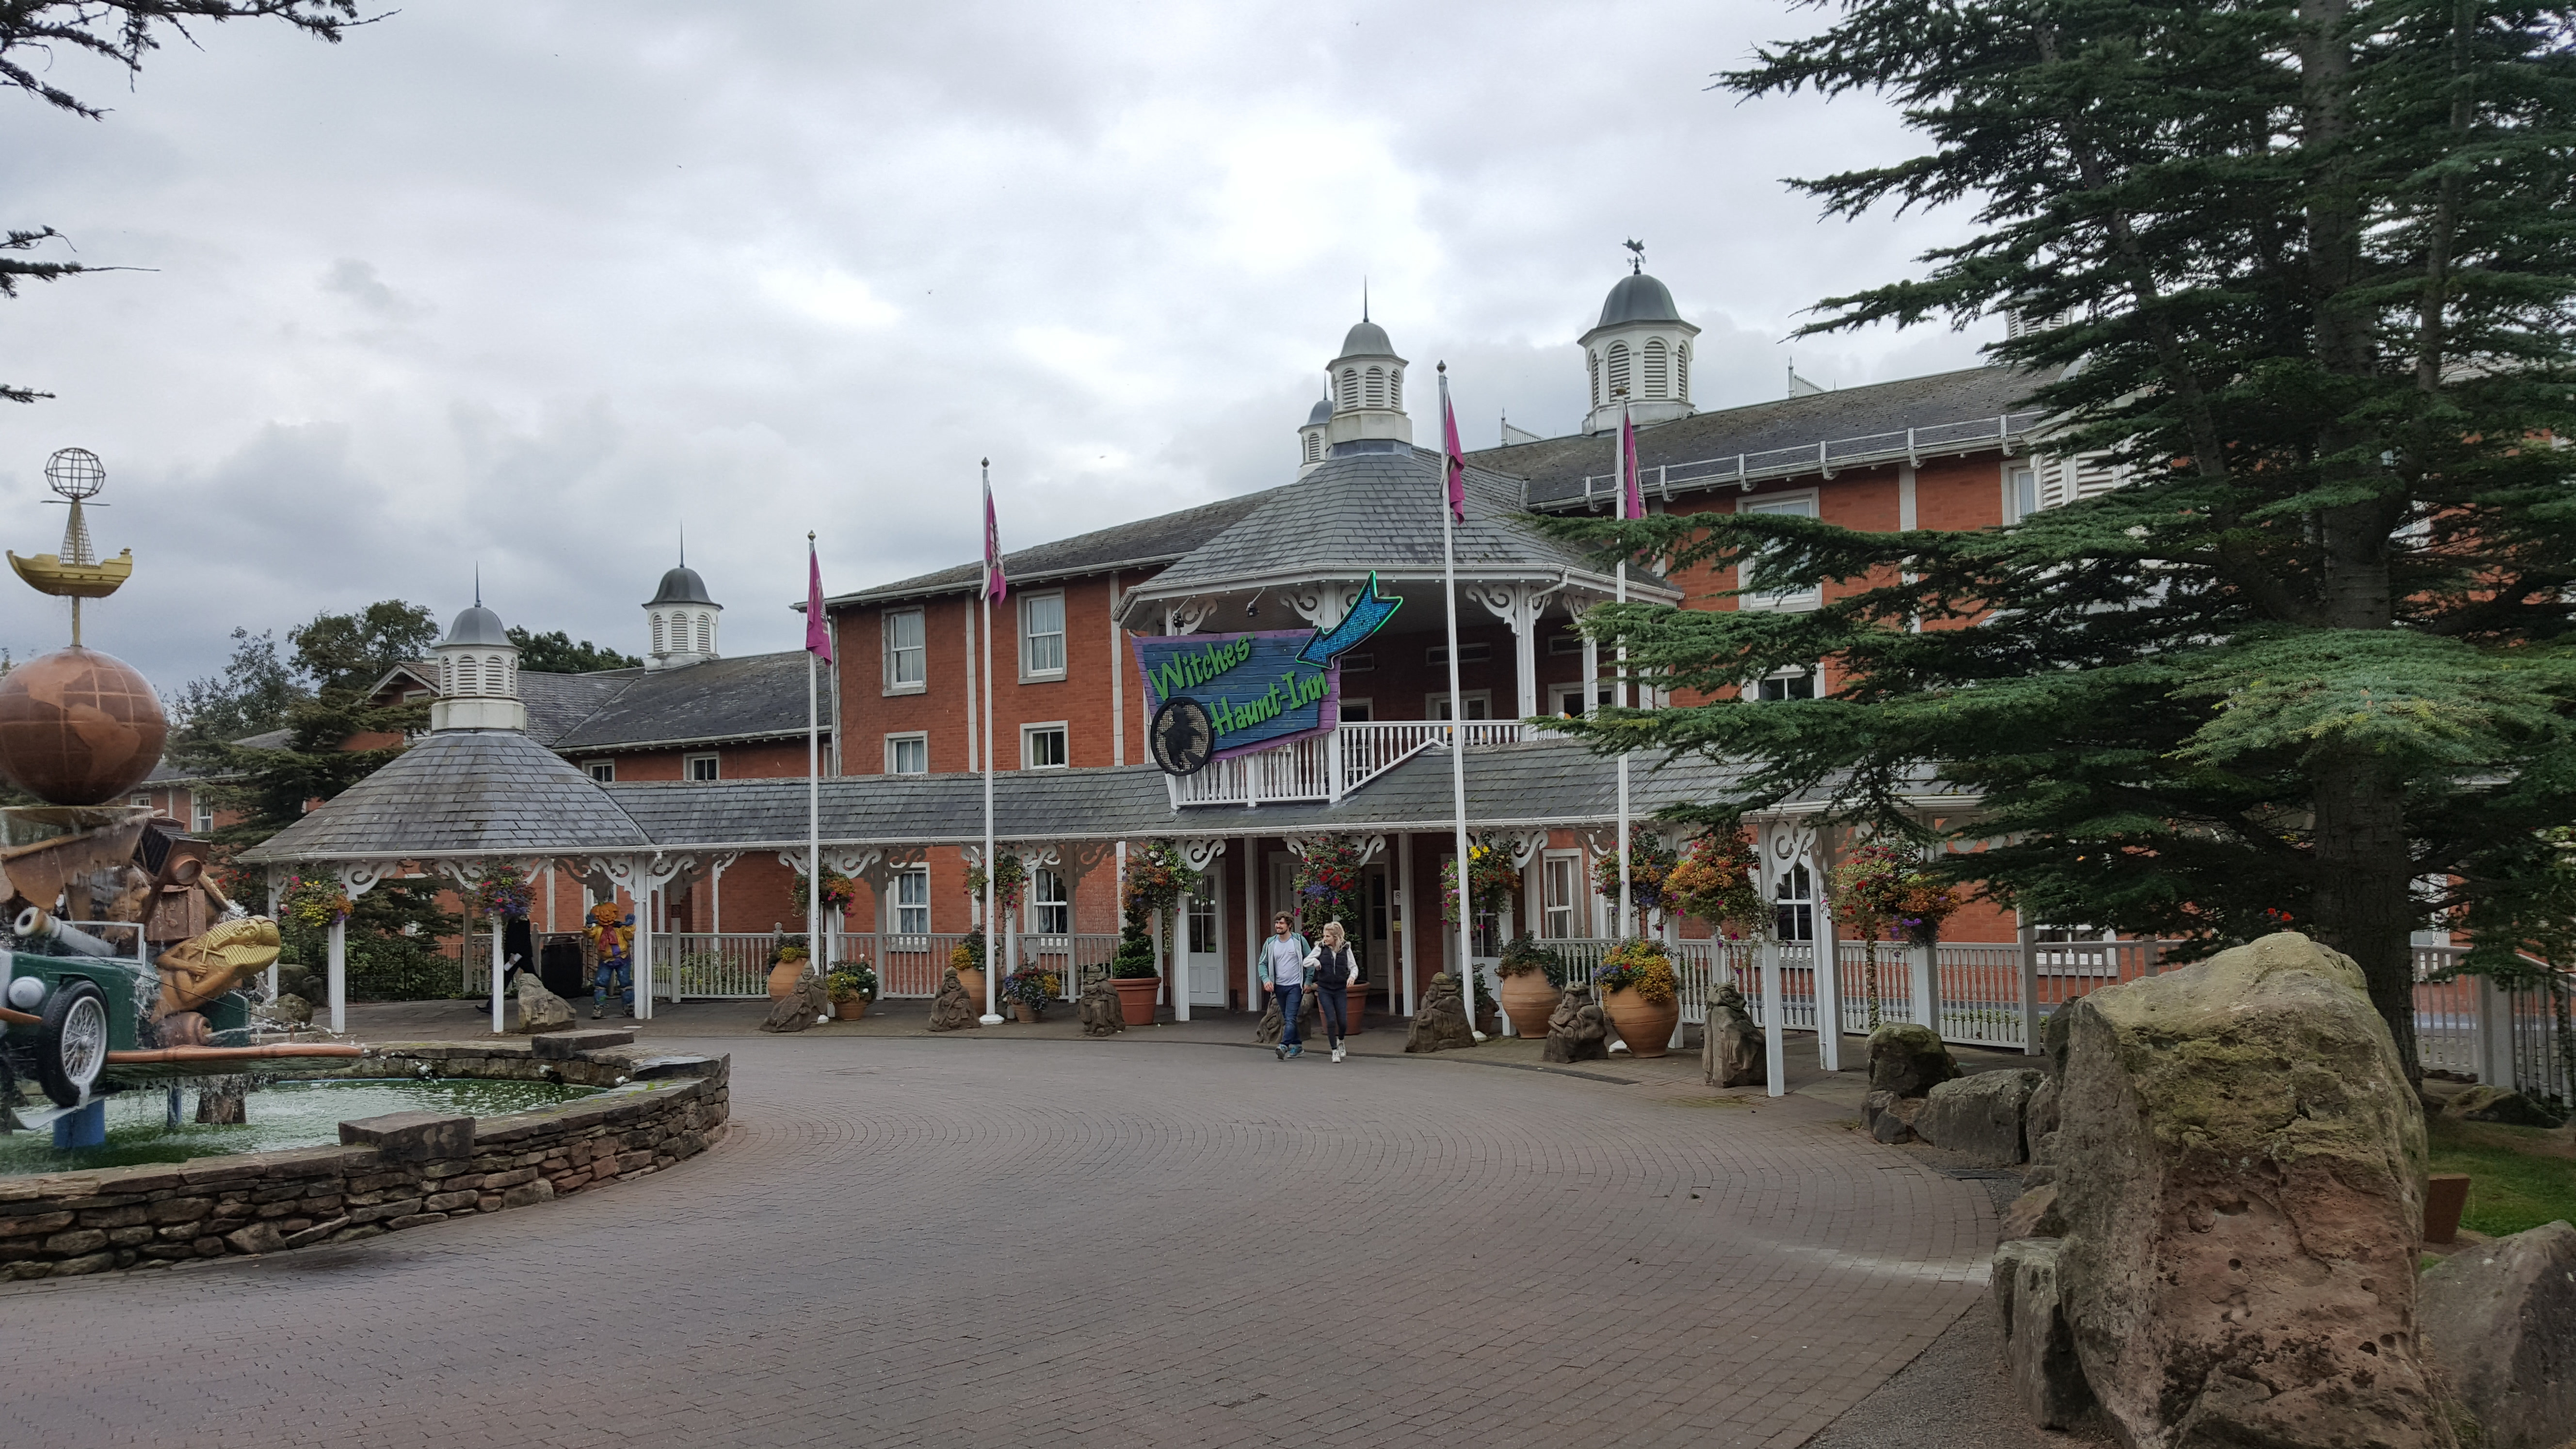 The Alton Towers Hotel themed for Halloween.